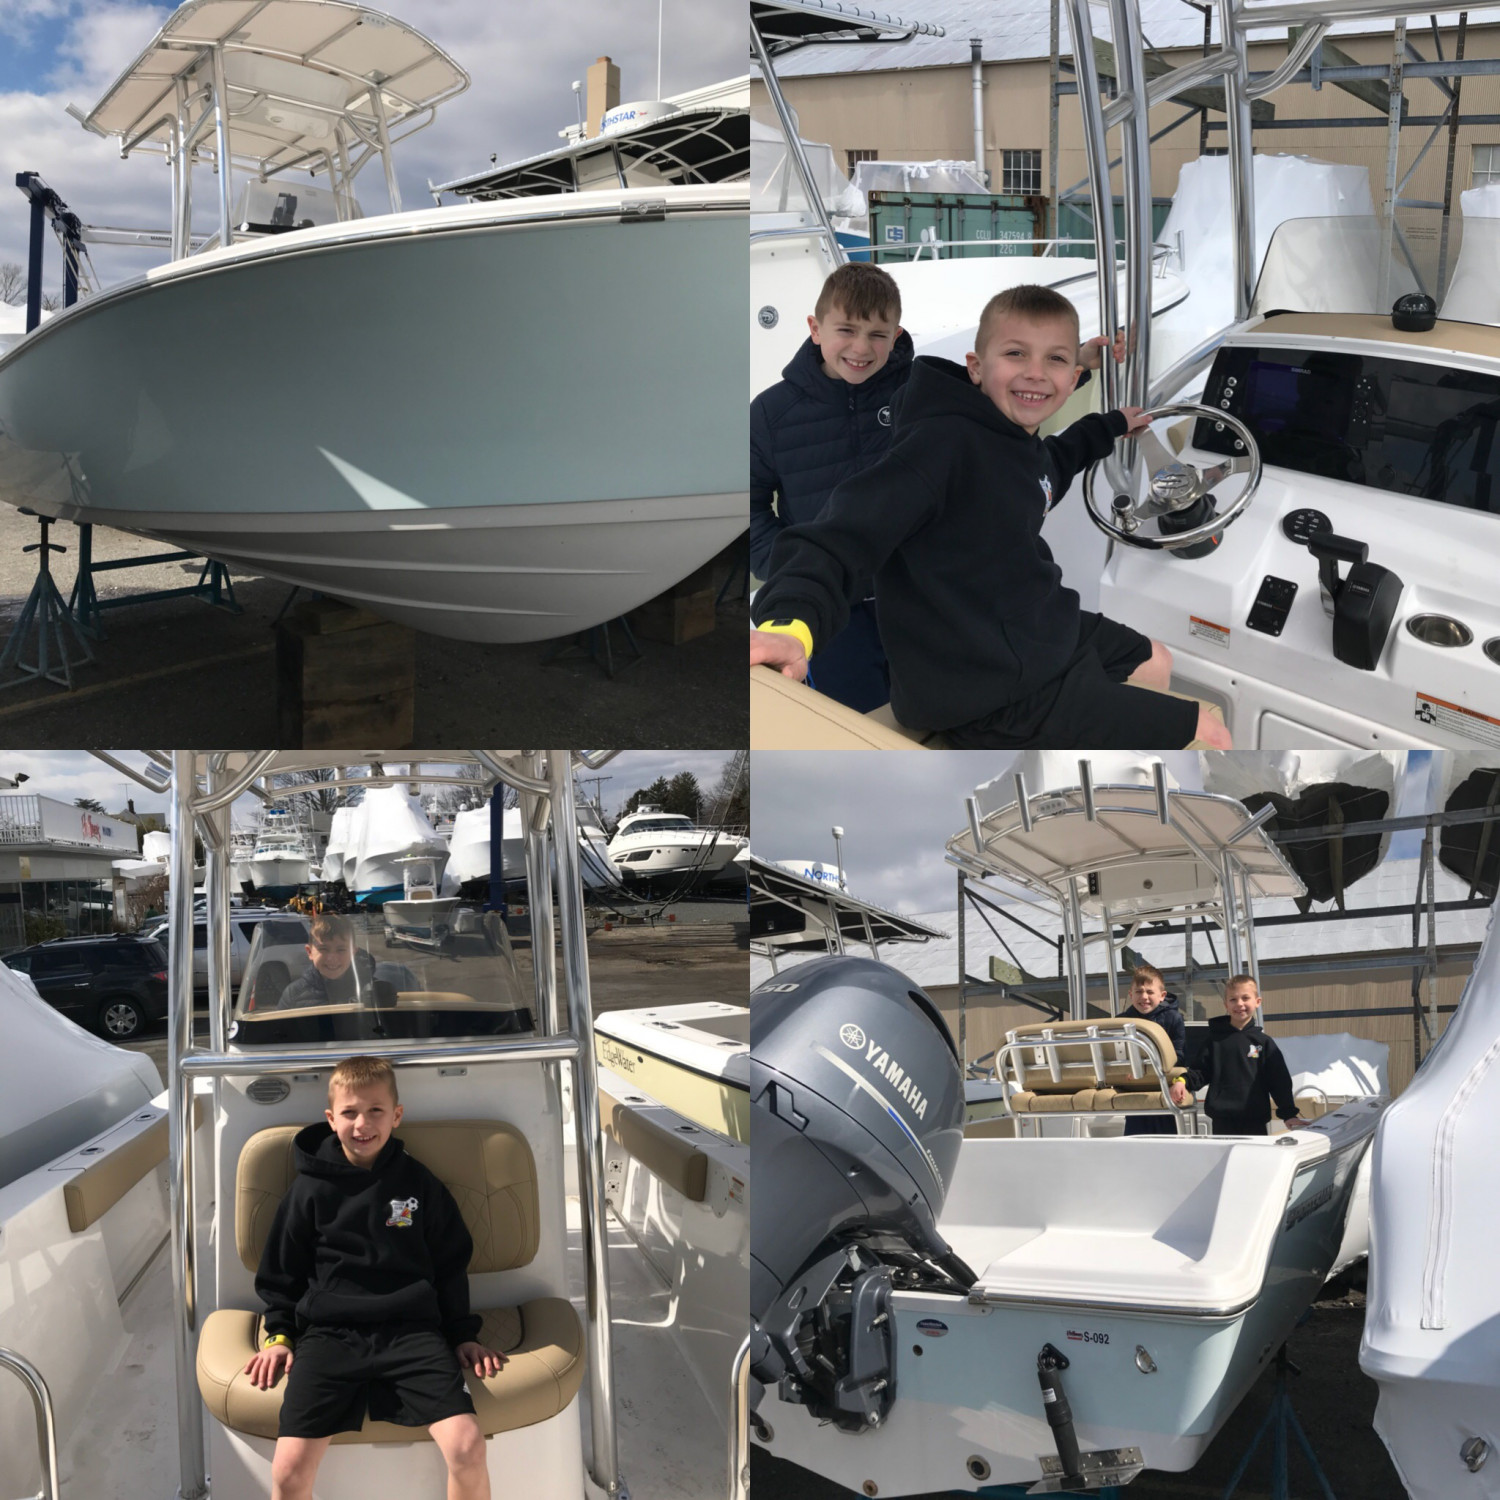 Title: New boat - On board their Sportsman Open 212 Center Console - Location: Brielle.NJ. Participating in the Photo Contest #SportsmanMarch2018